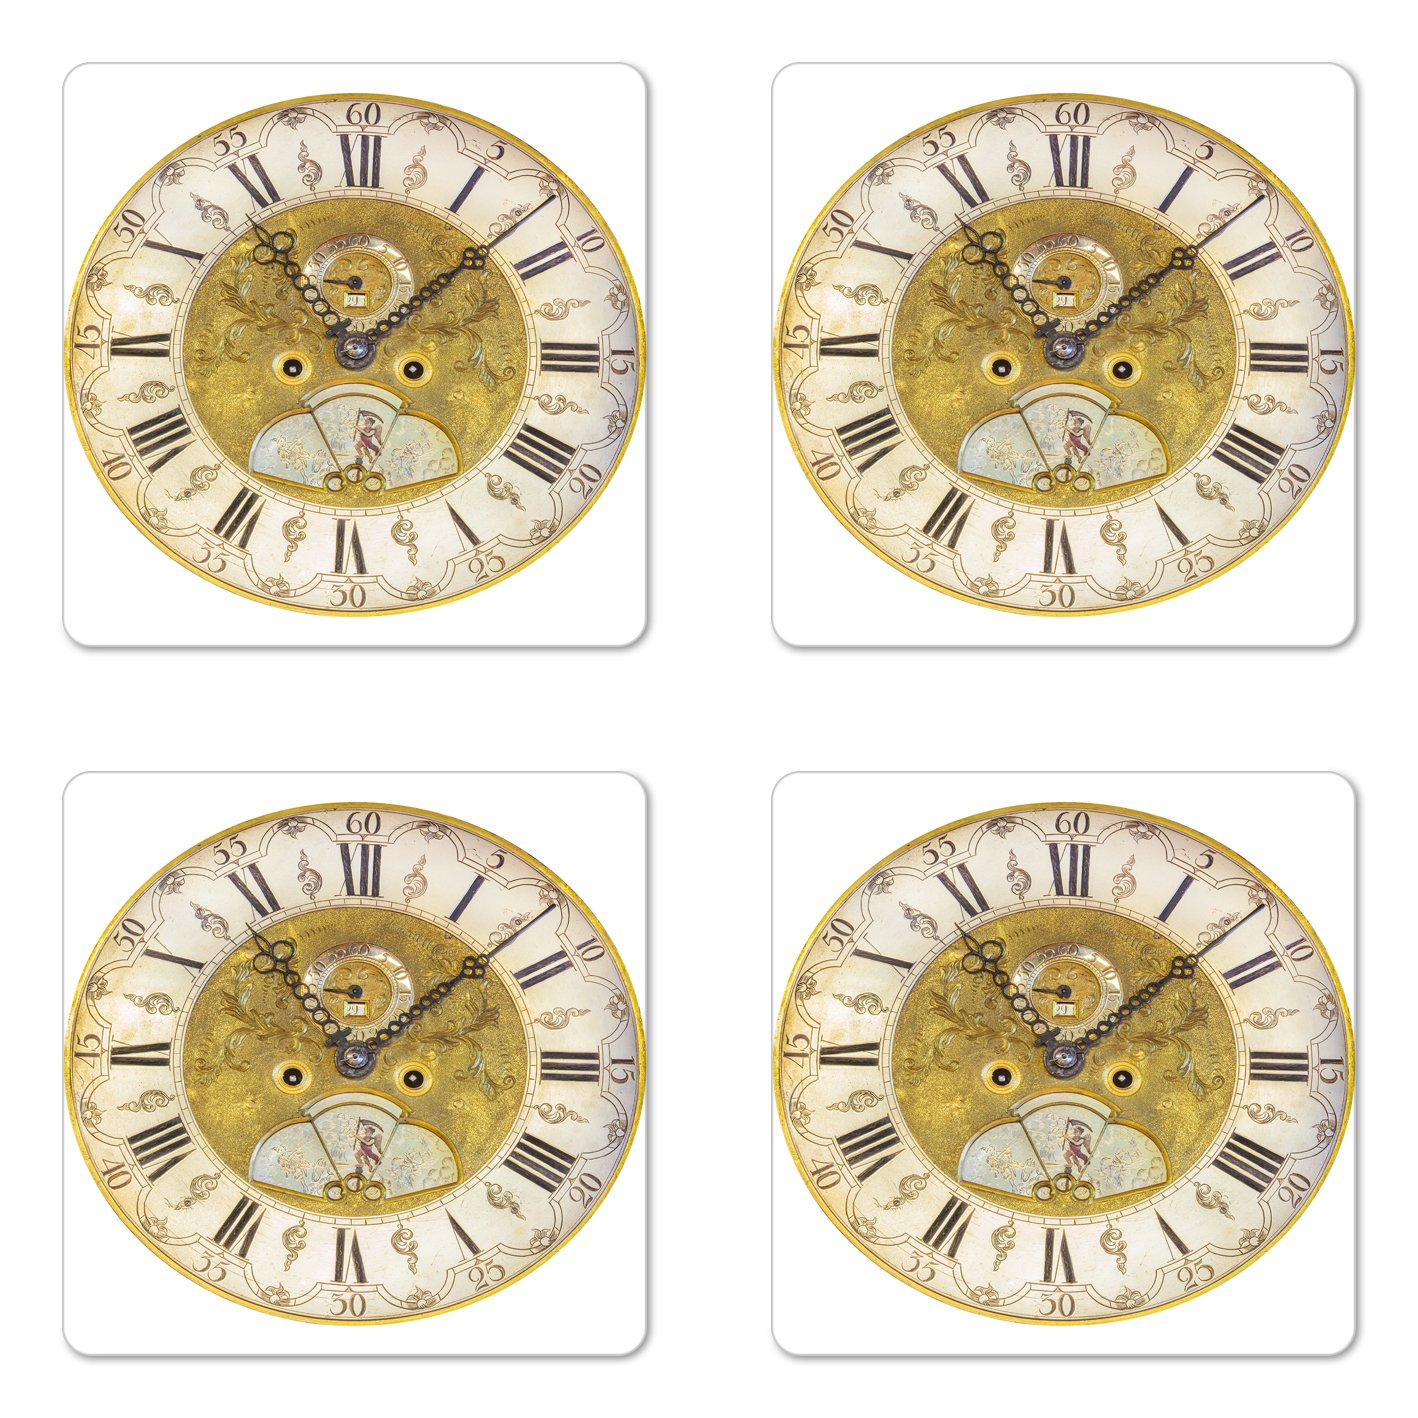 Ambesonne Clock Coaster Set of Four, Vintage Theme A Seventeenth Century Ornamental Clock Face with Roman Numbers, Square Hardboard Gloss Coasters for Drinks, Gold and Black